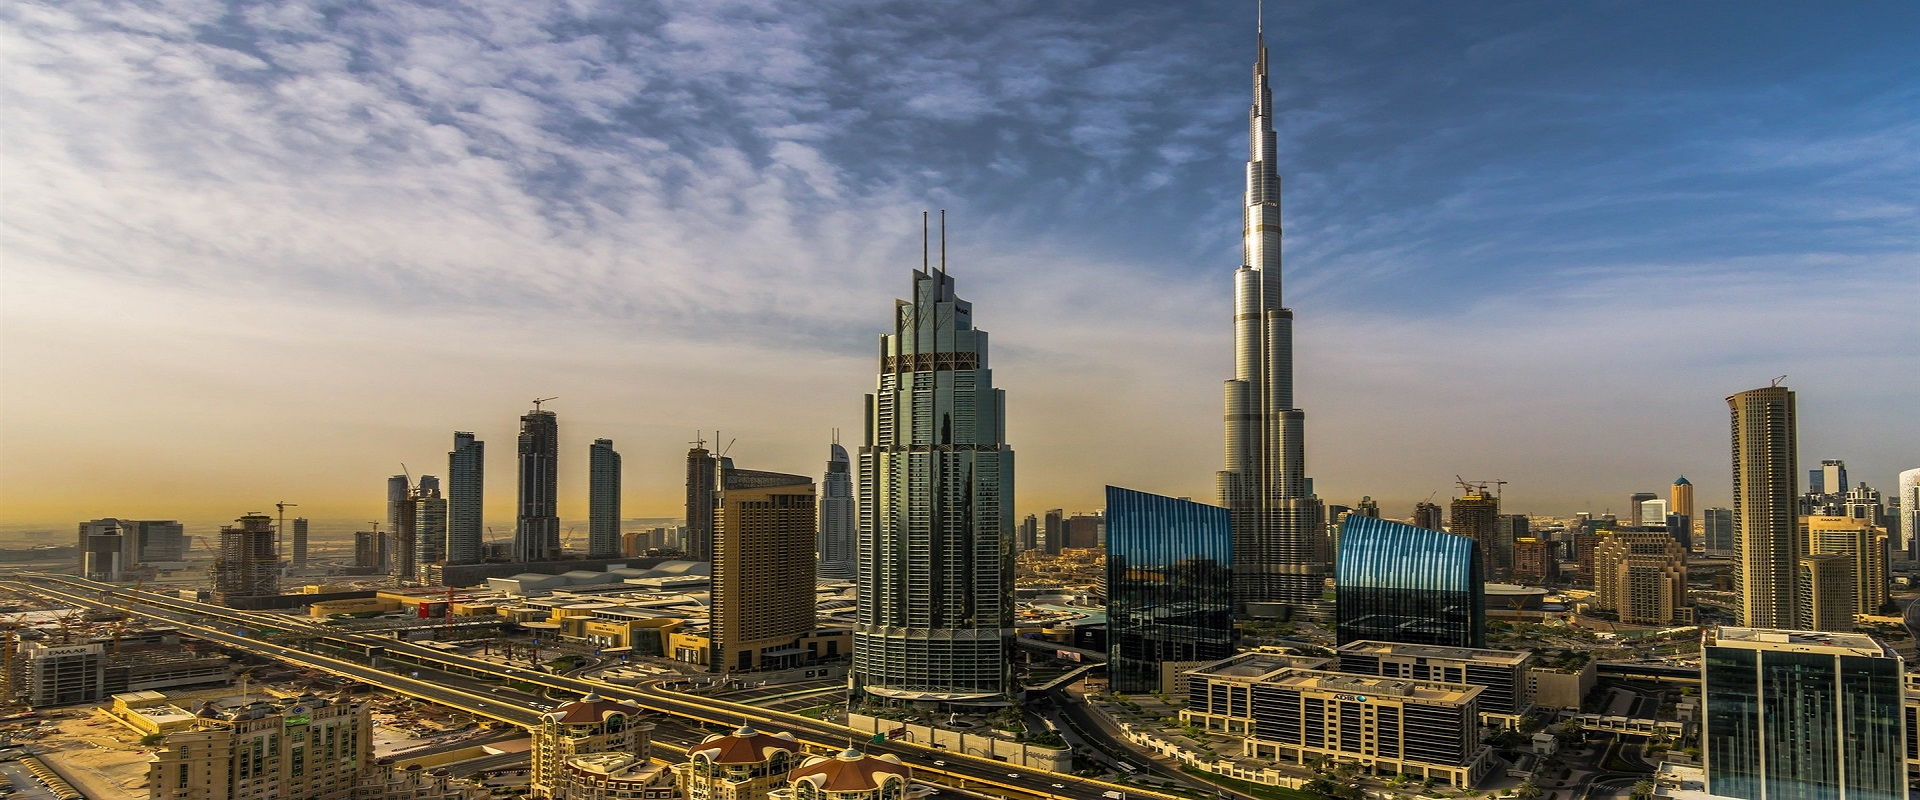 Dubai Premium Trio Package